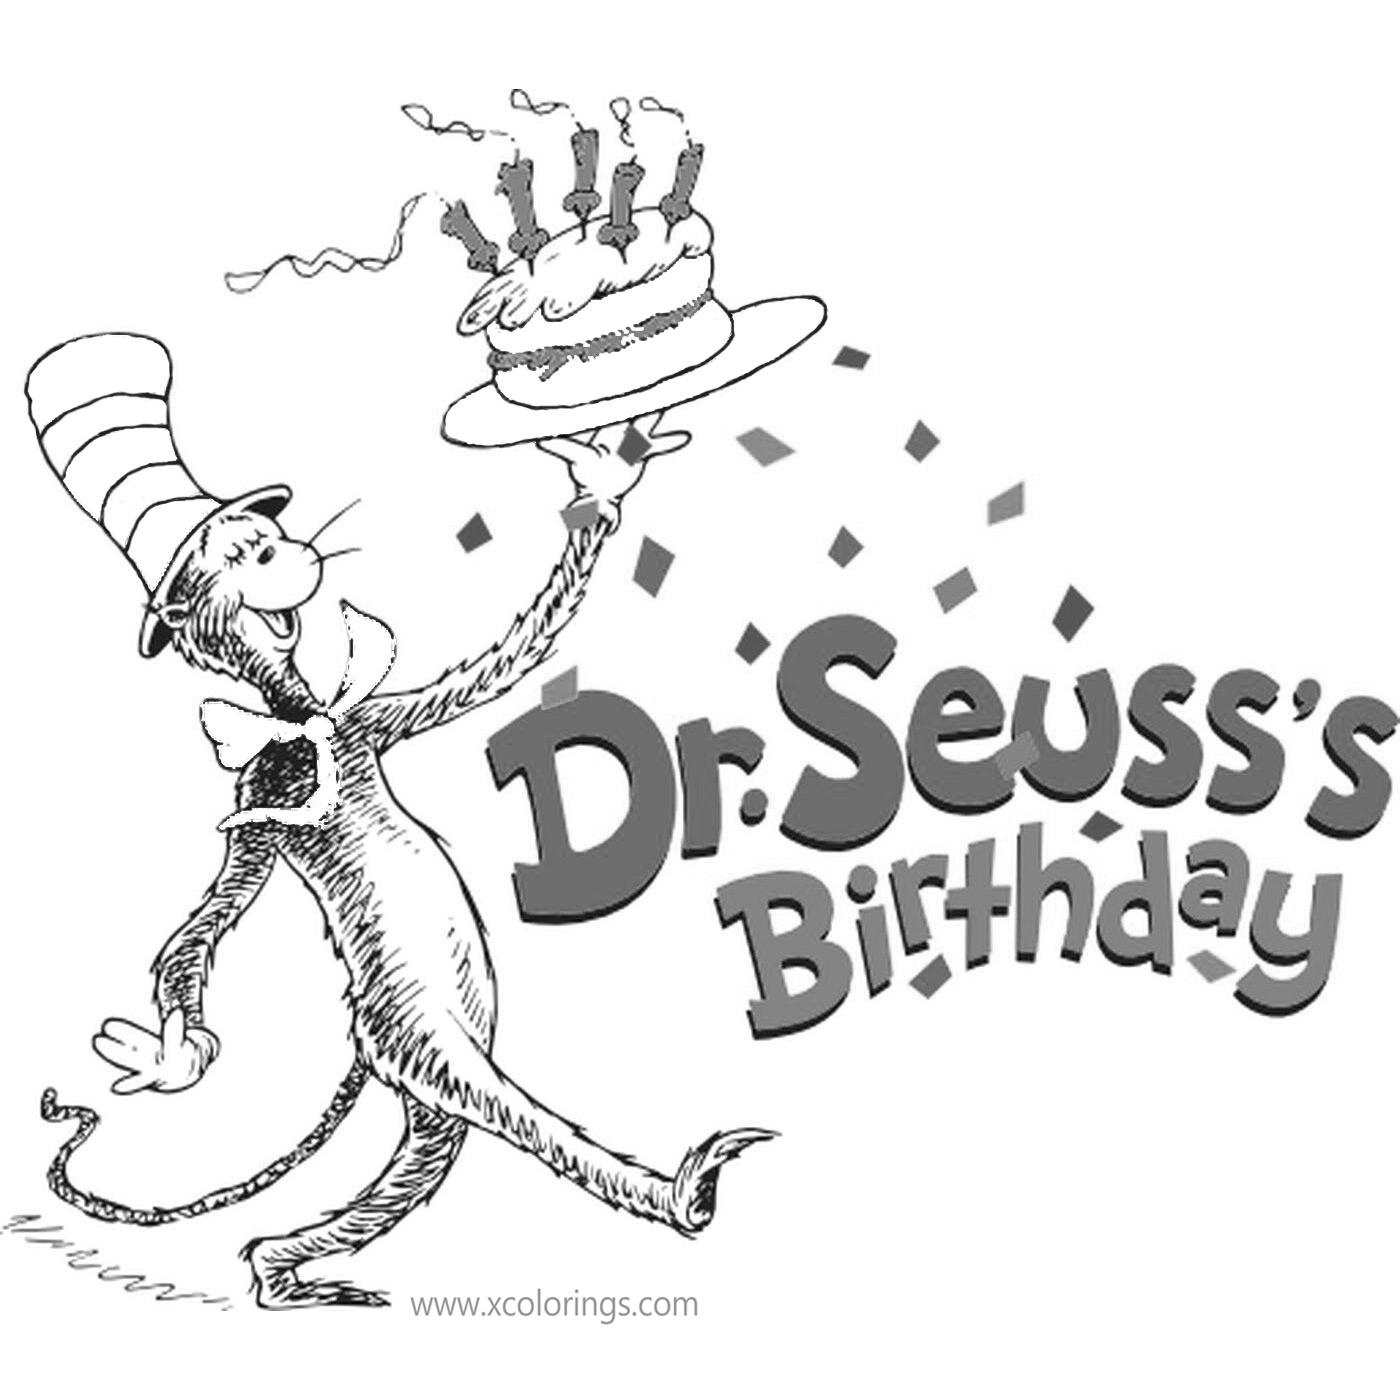 Happy Birthday Dr Seuss Coloring Pages Free To Print Xcolorings Com